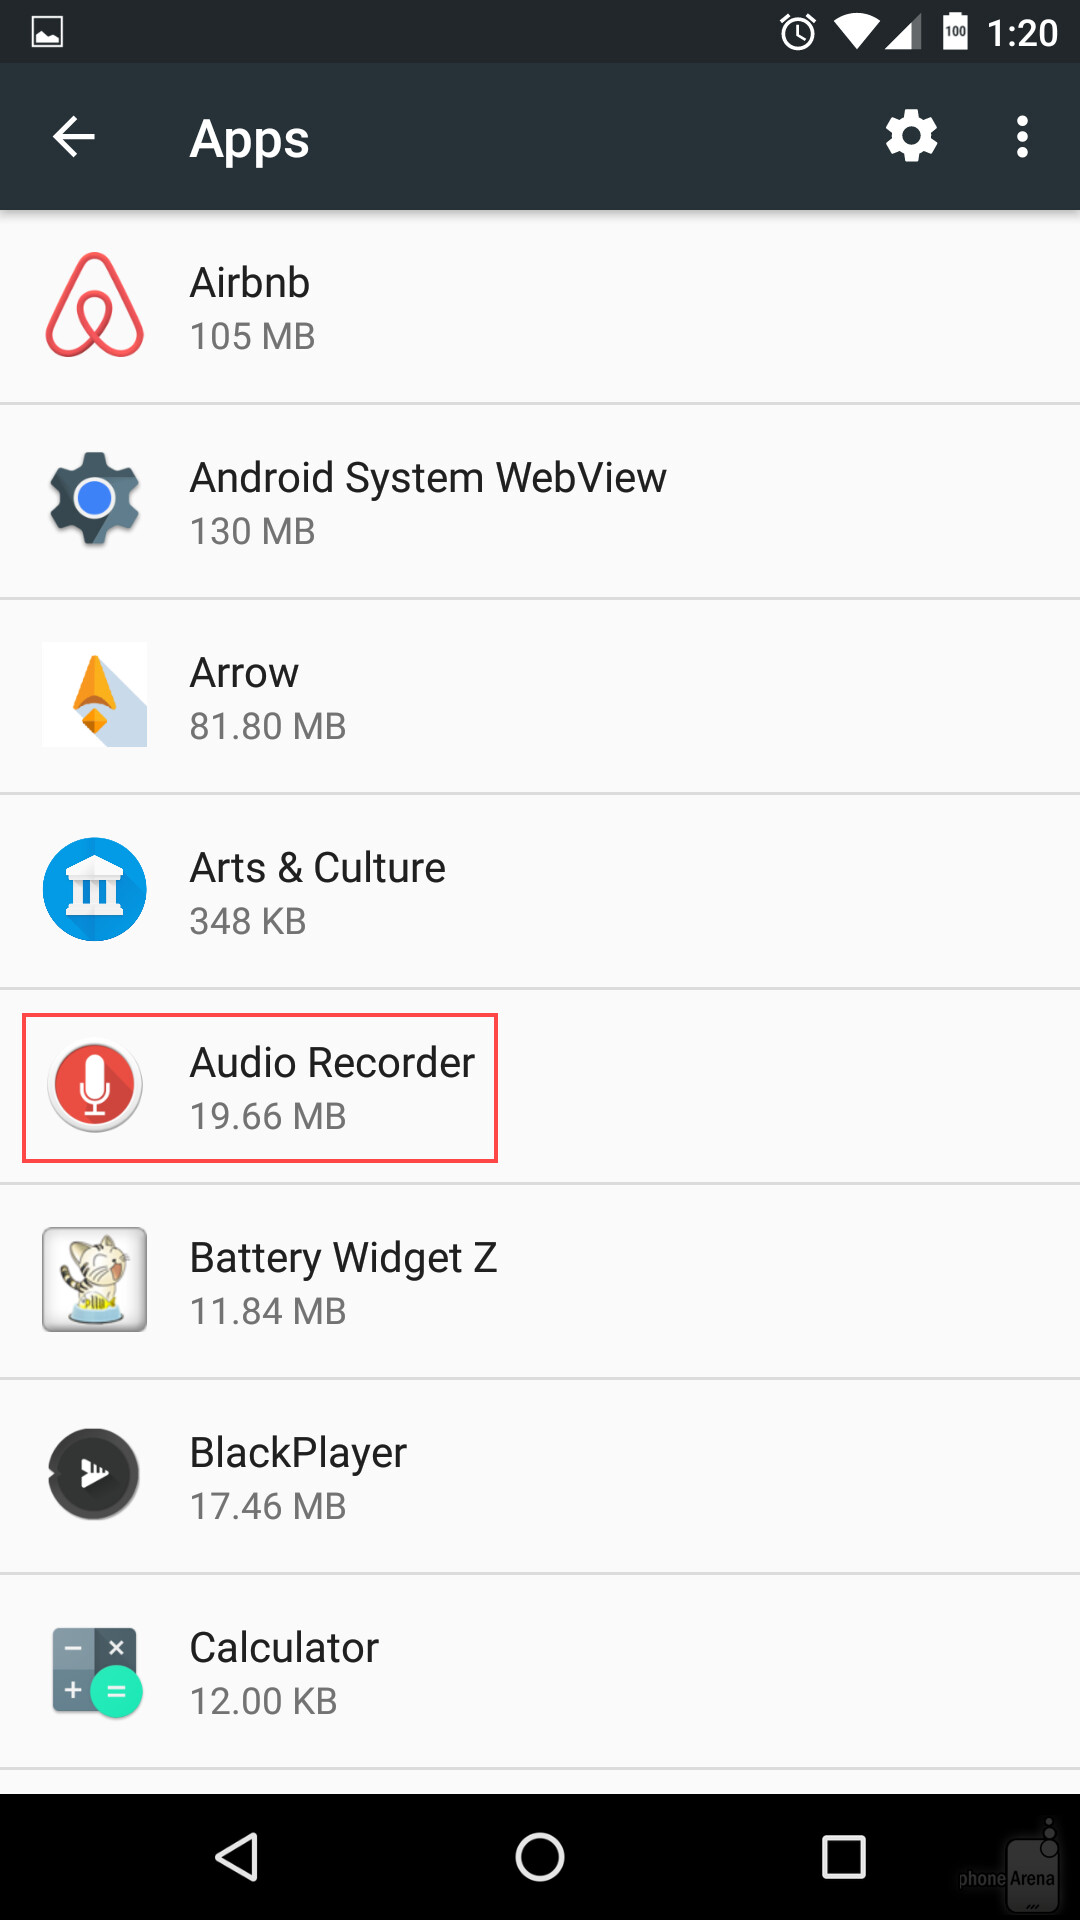 Now You Have A List Of All Your Installed Apps Locate The One For Which You